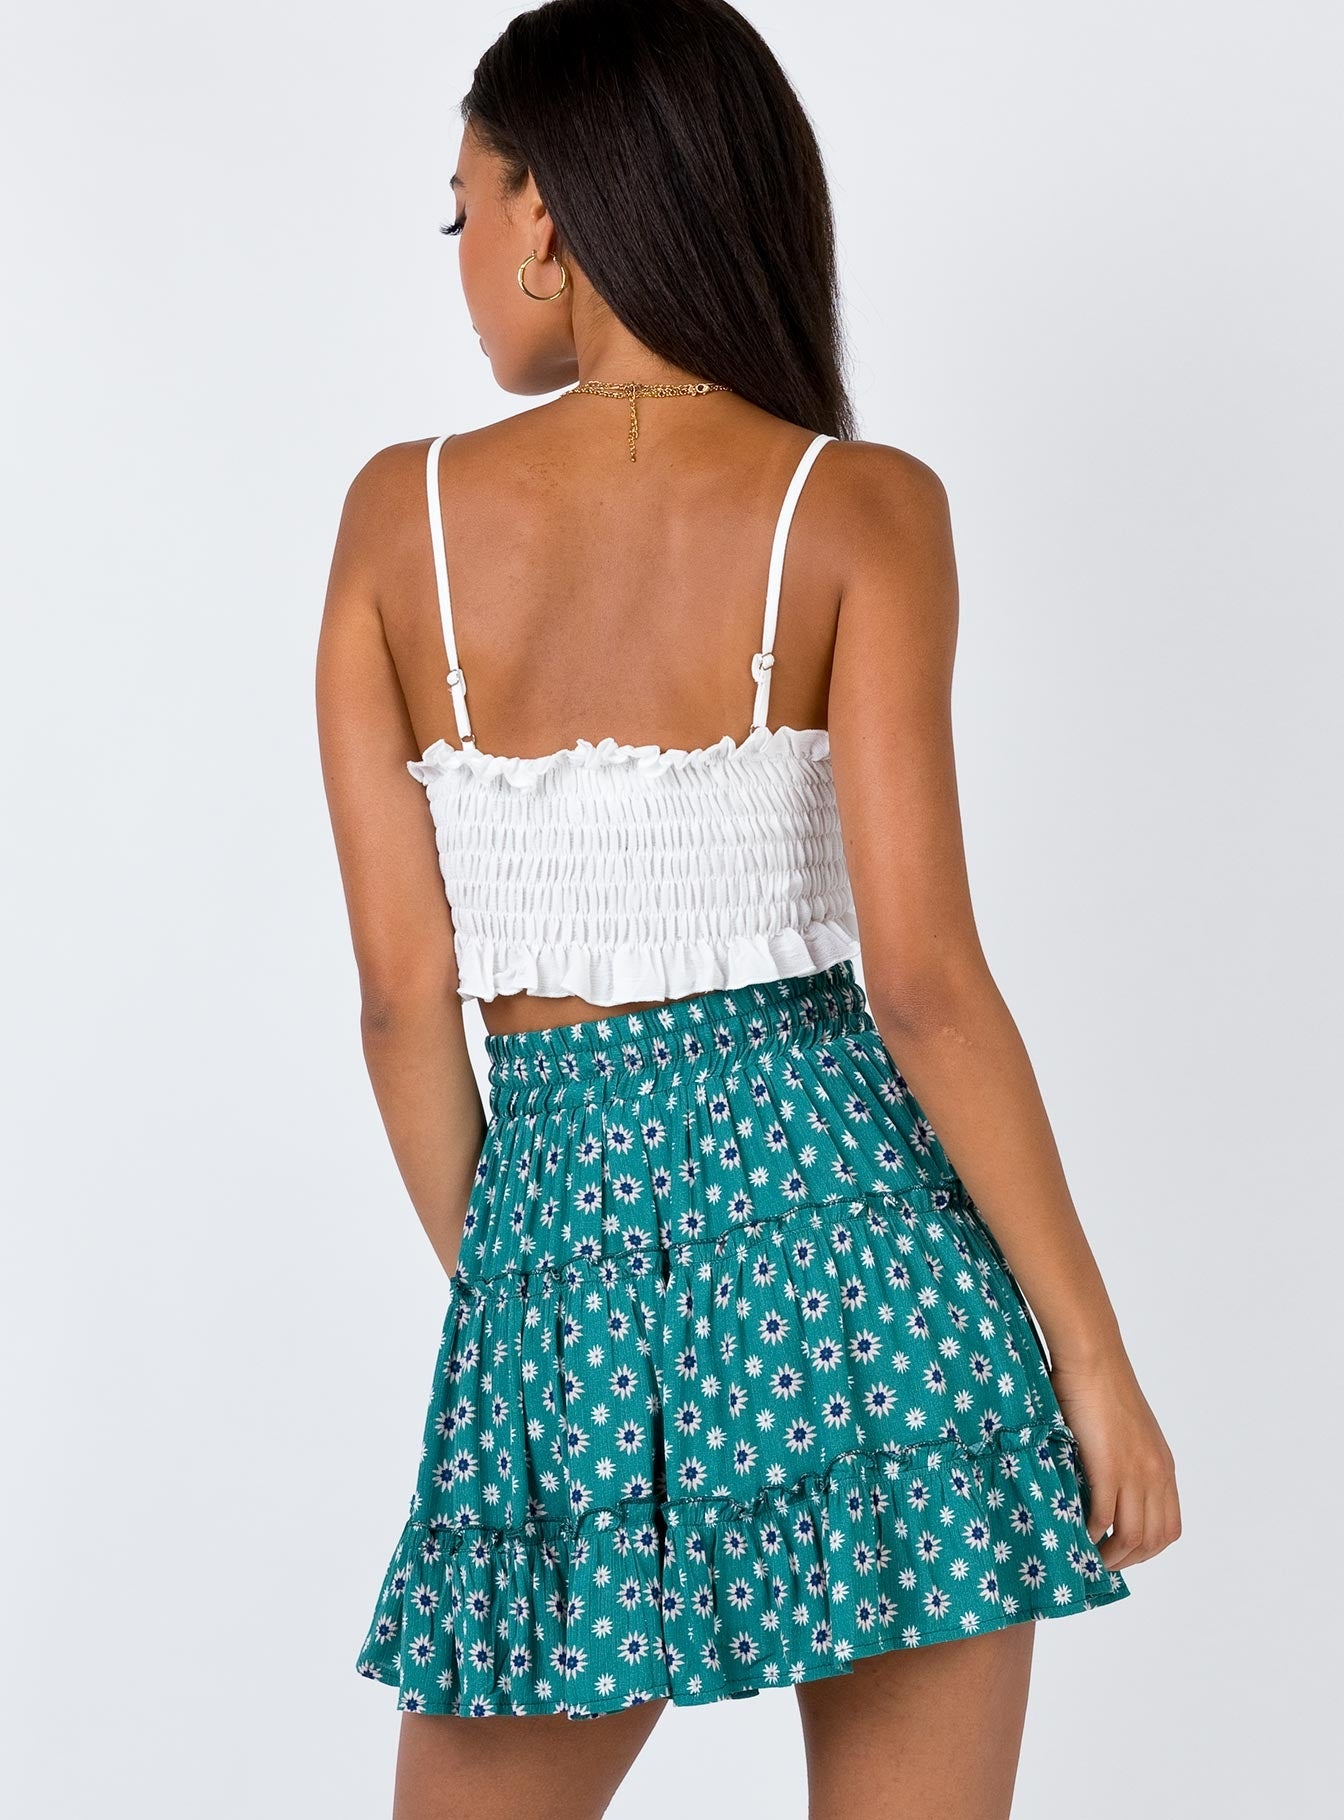 Best Friend Mini Skirt Green